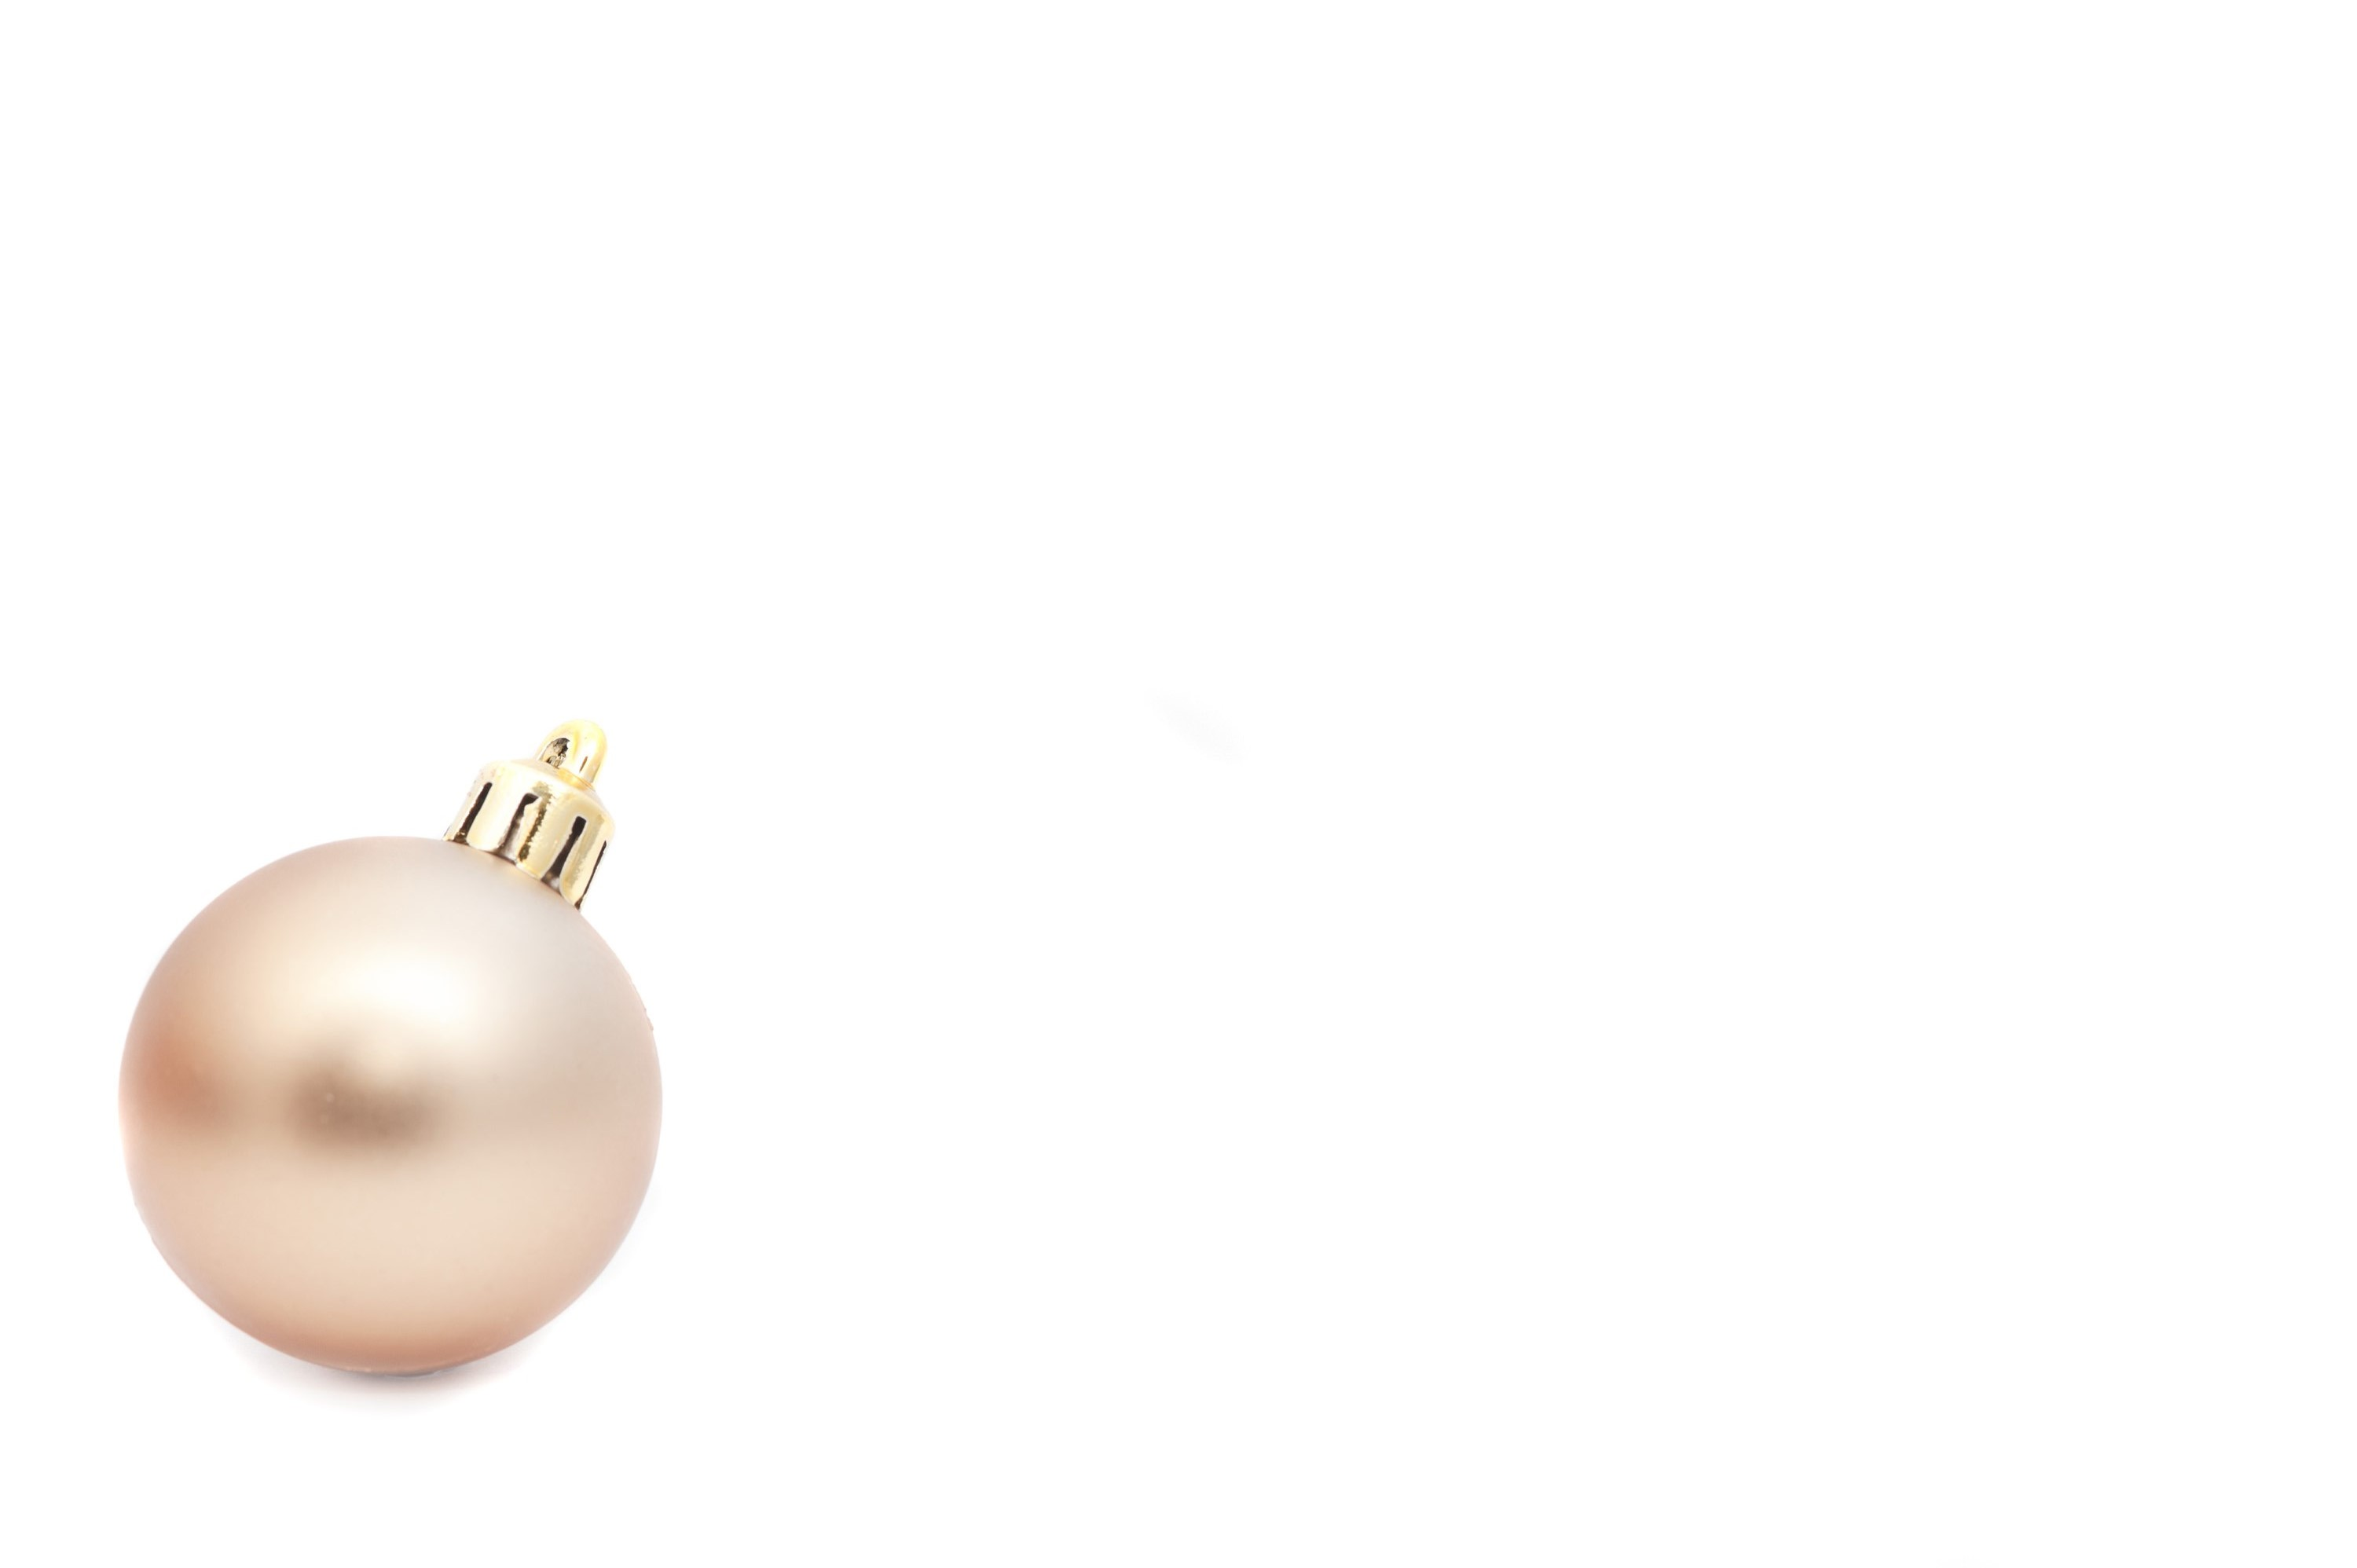 Single gold Christmas bauble with a huge white copy space for your text